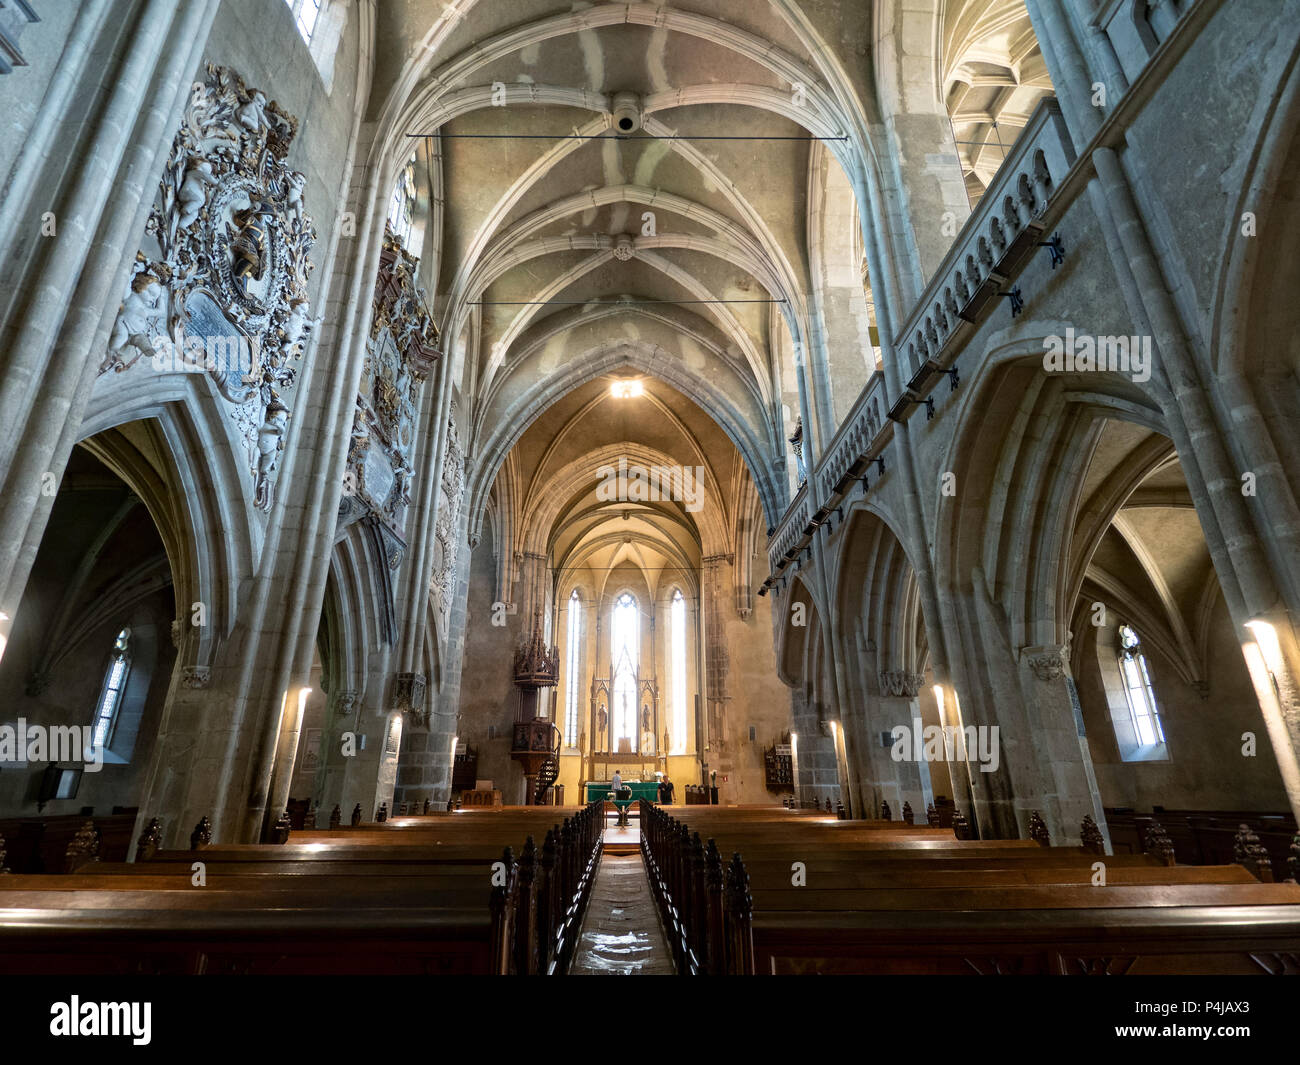 St. Mary cathedral interior, Sibiu, Romania - Stock Image